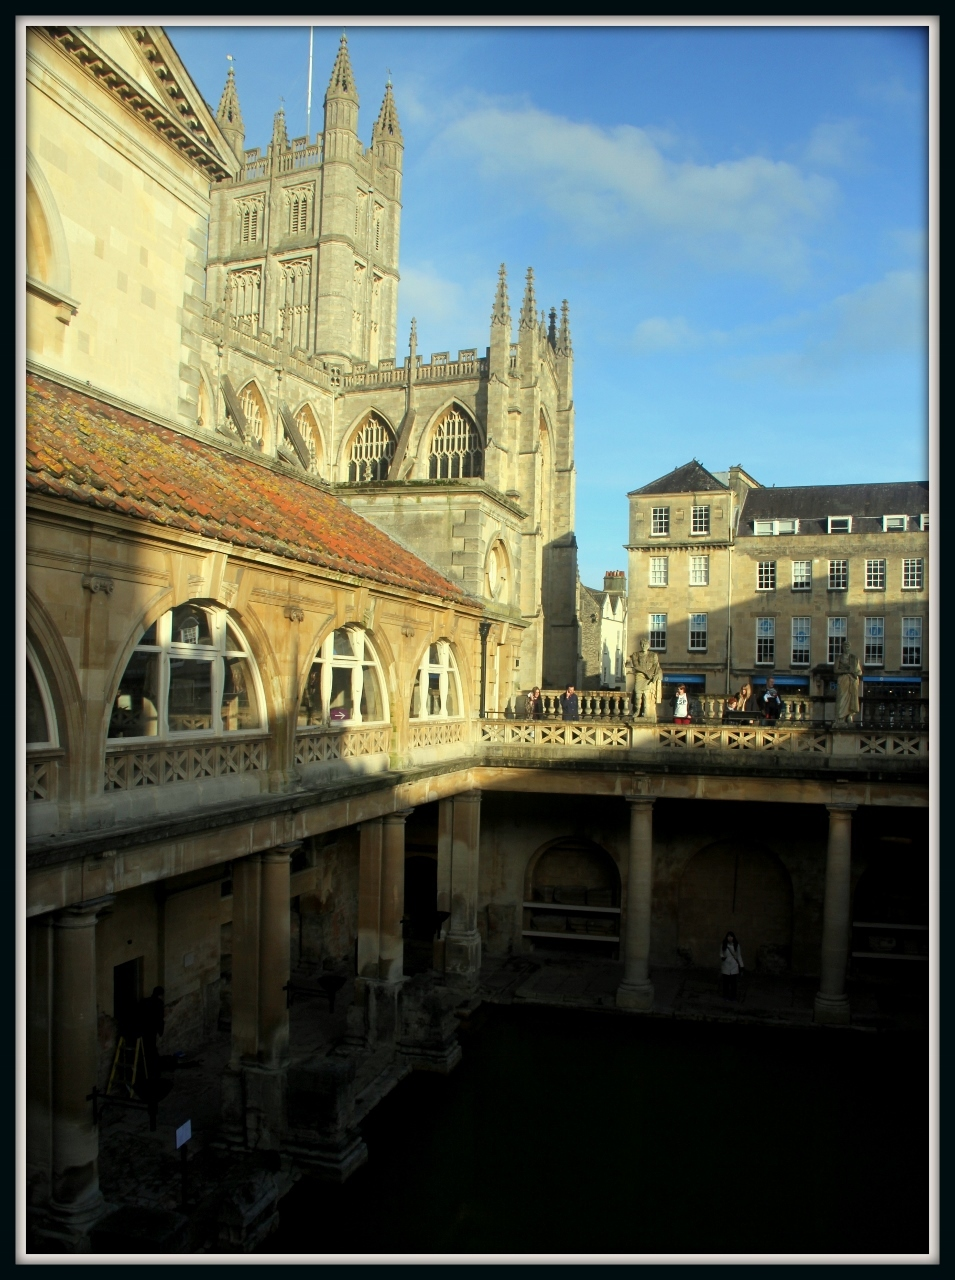 Roman Baths, Bath UK